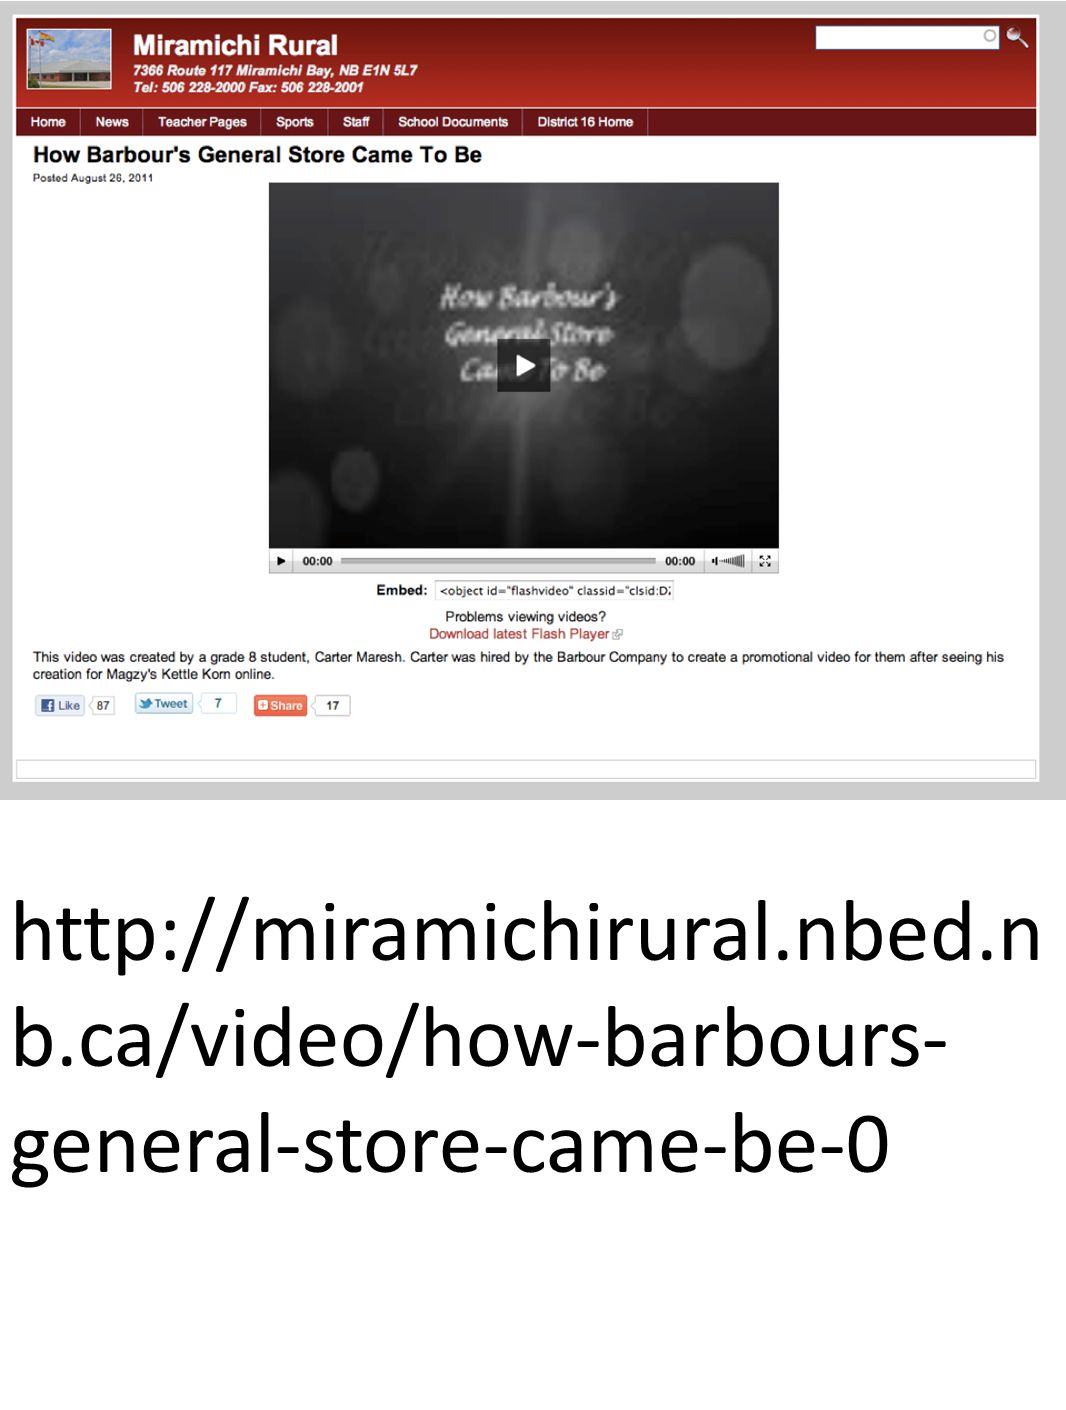 http://miramichirural.nbed.n b.ca/video/how-barbours- general-store-came-be-0